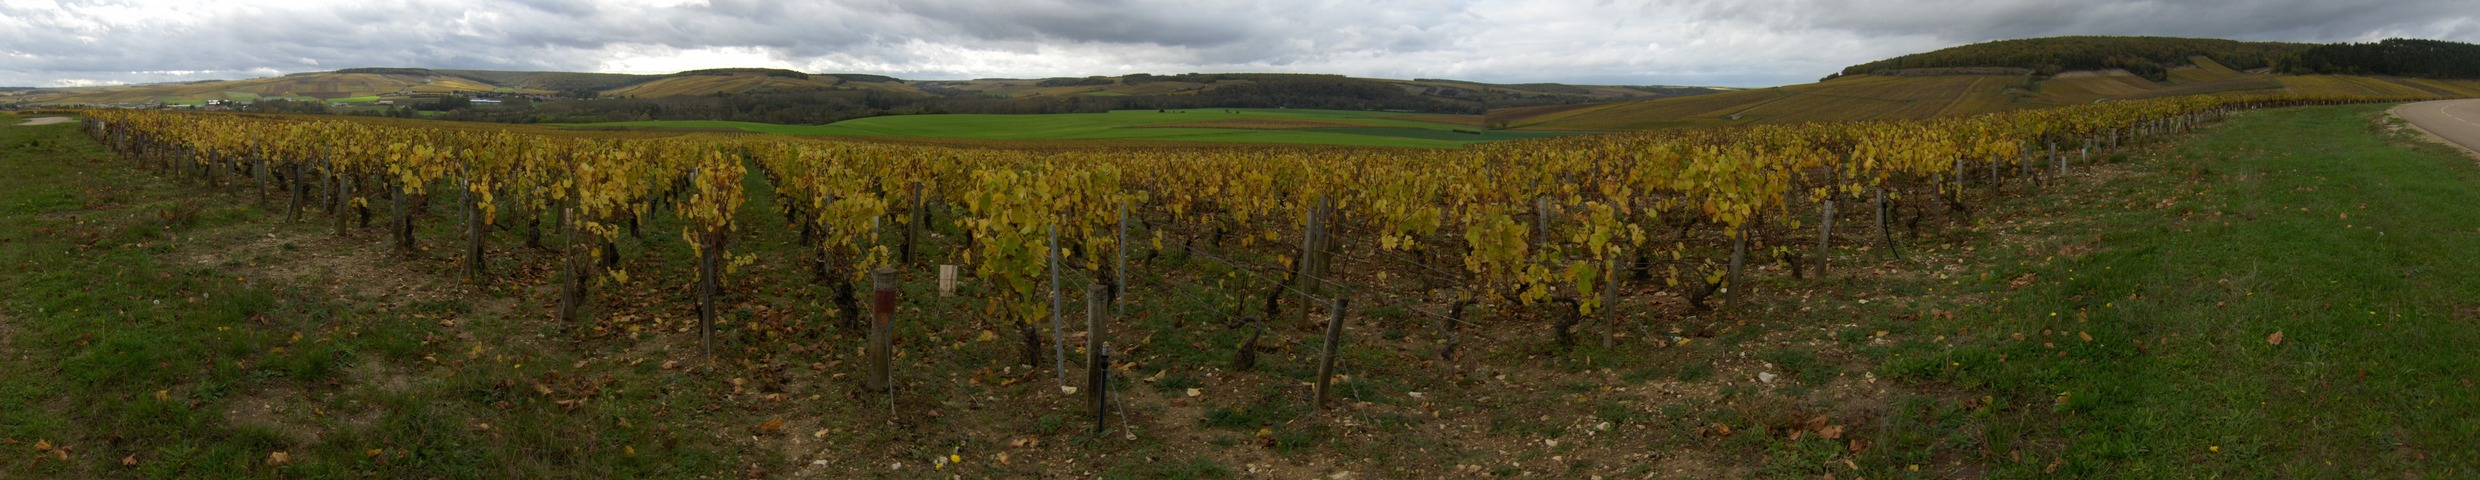 Vineyards at Chablis area not far from of CP